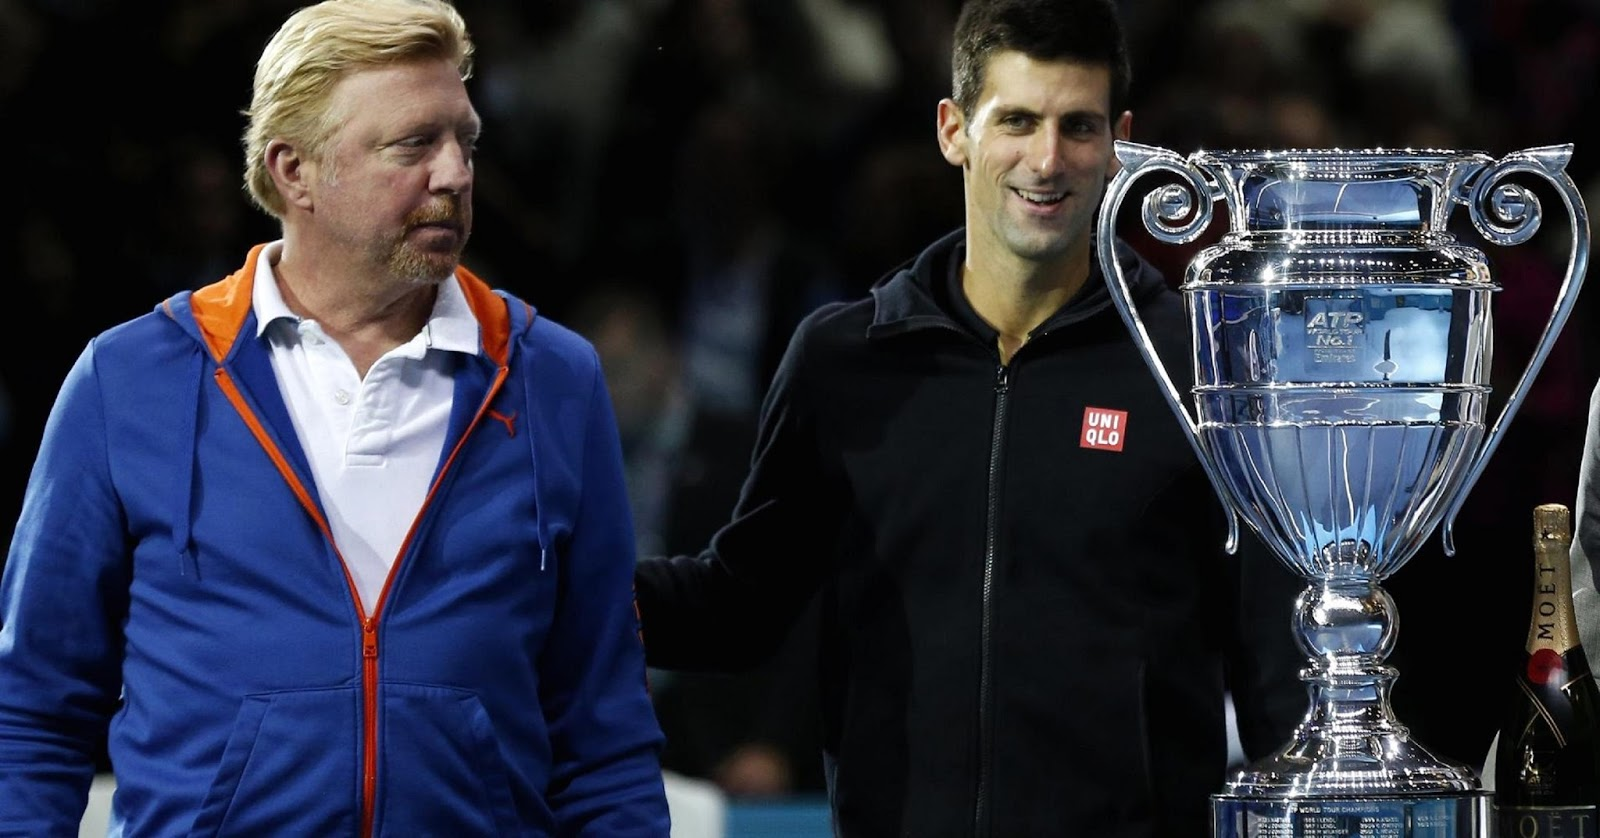 NOVAK DJOKOVIC, BORIS BECKER